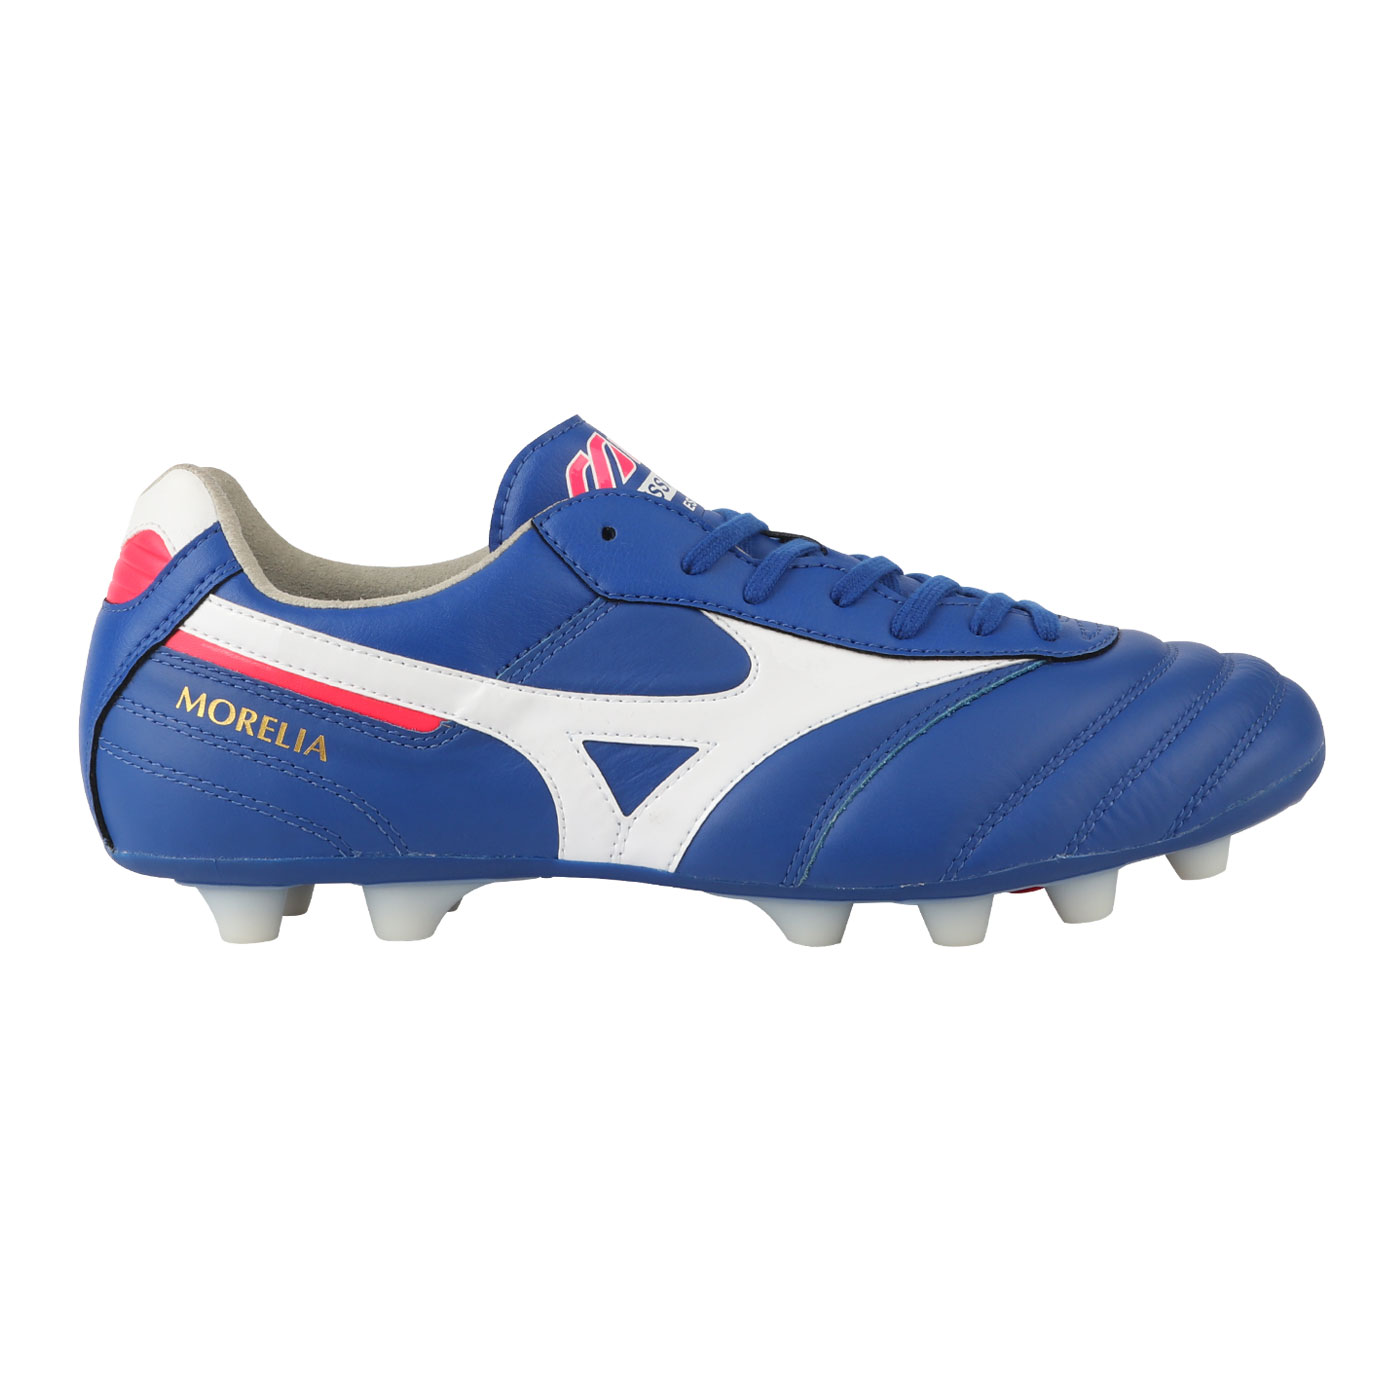 MORELIA II ELITE (Short Tongue)-REFLEX BLUE C/WHITE